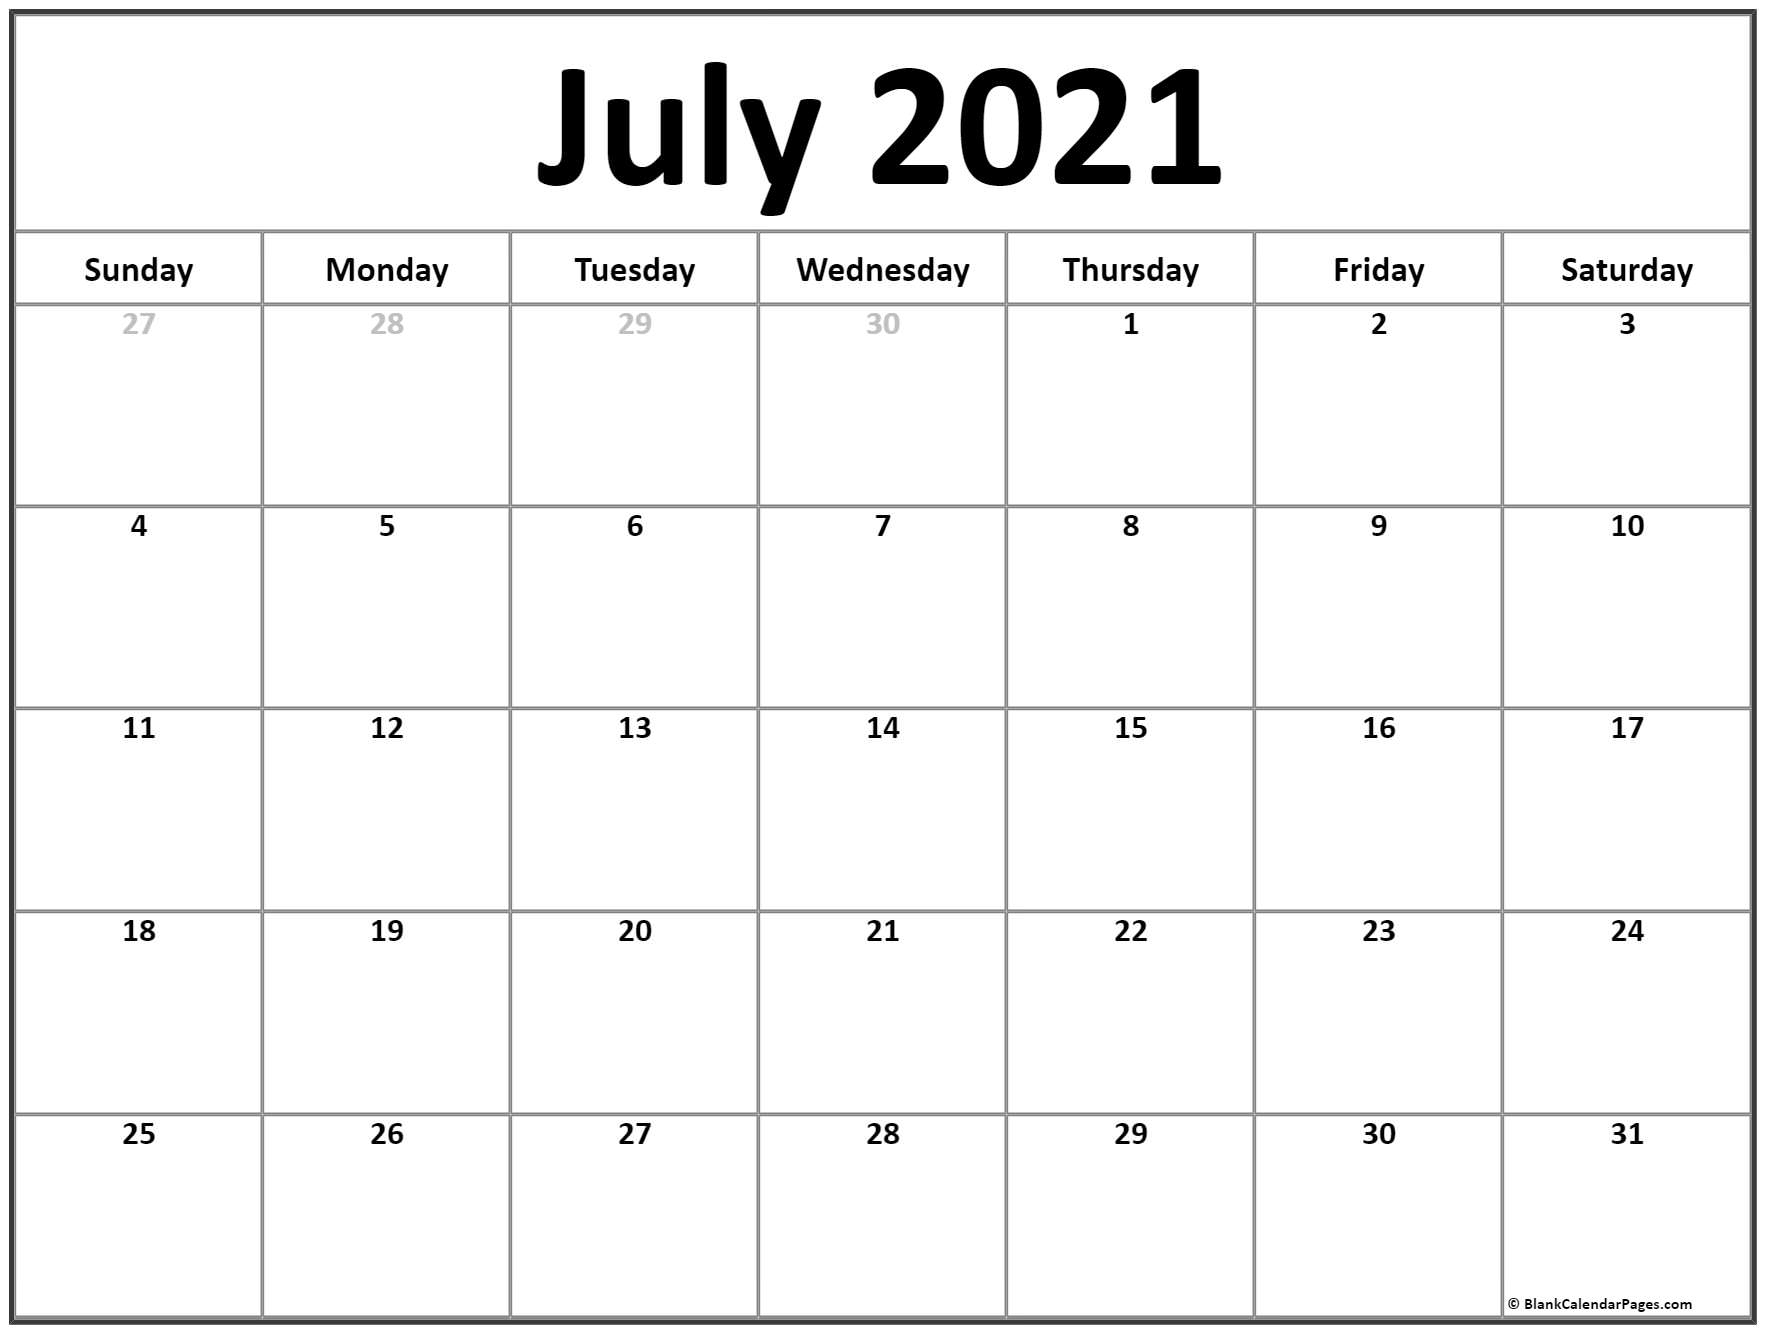 July 2021 Calendar | Free Printable Monthly Calendars